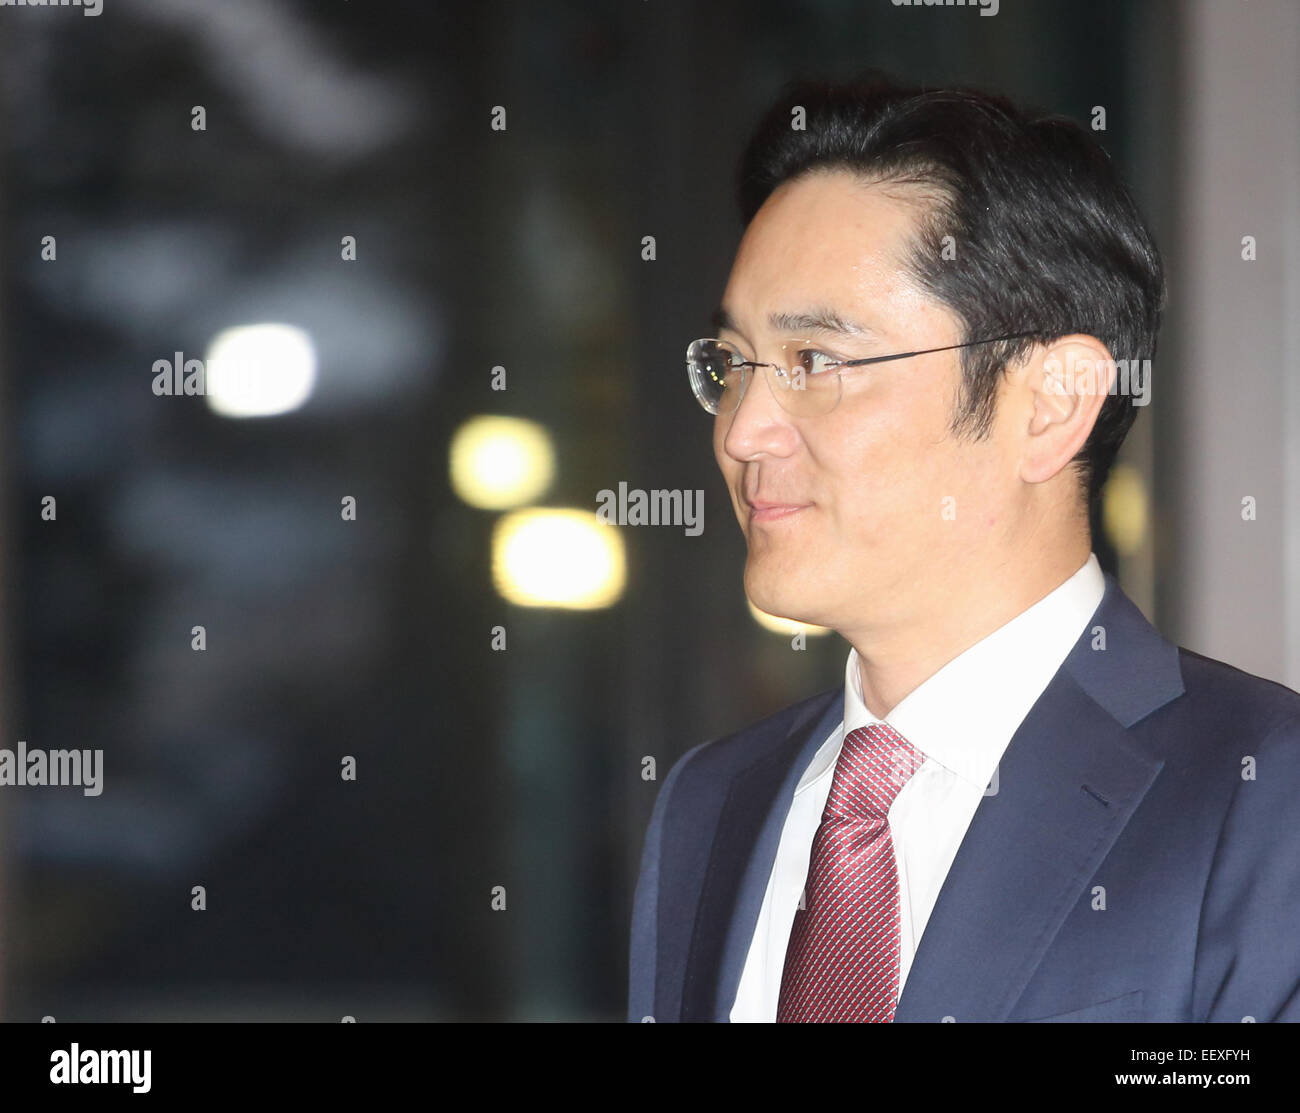 Lee Jay-yong, Jan 19, 2015 : Samsung heir Lee Jay-yong arrives at Hotel Shilla to attend an annual meeting with Stock Photo